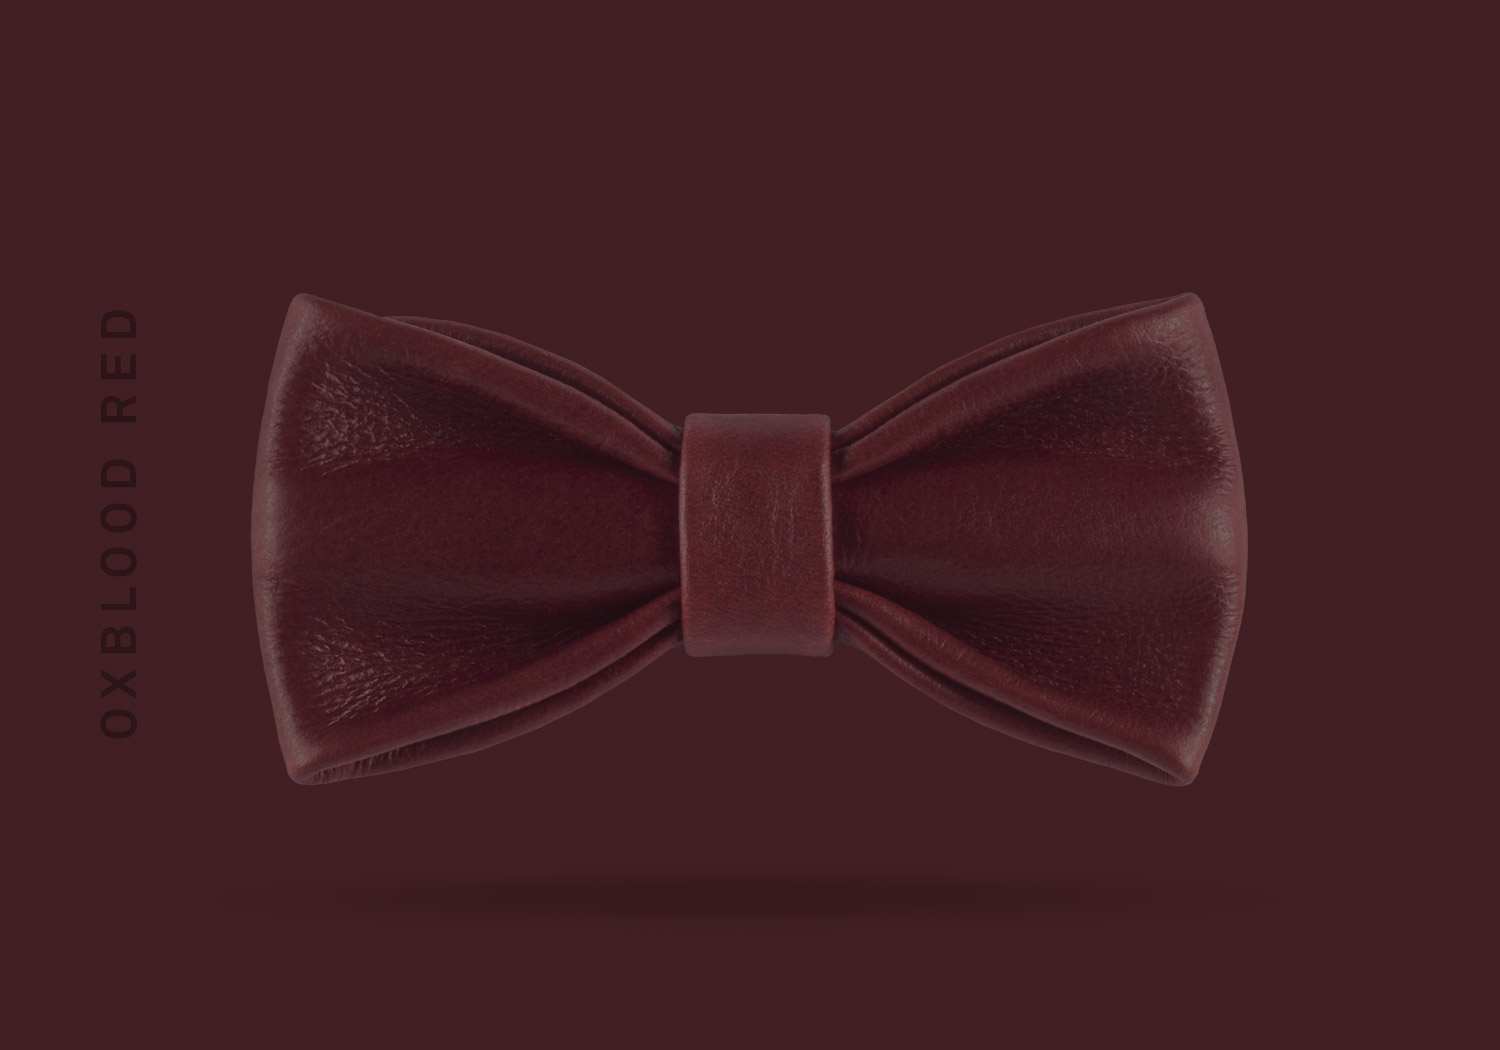 WEEF-Bow-Tie-Oxblood-Red-v2